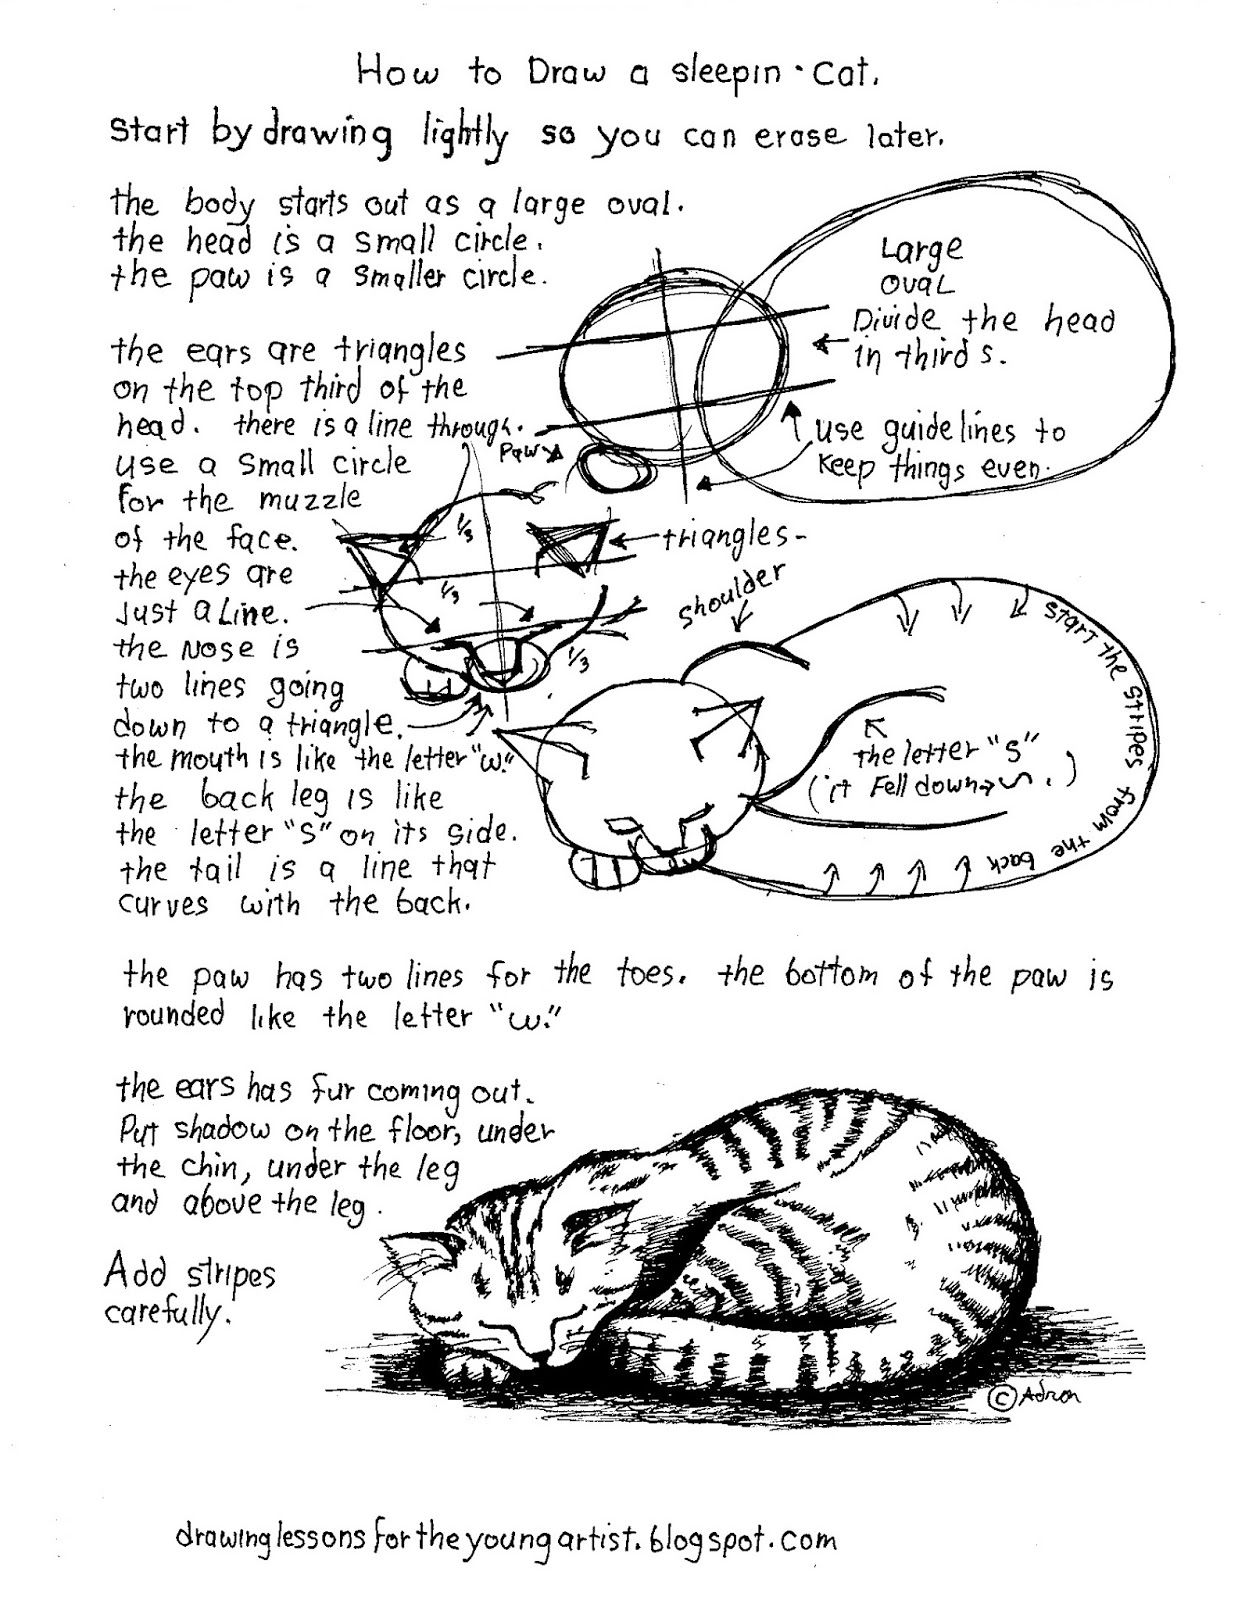 How To Draw Worksheets For The Young Artist How To Draw A Sleeping Cat A Printable Worksheet